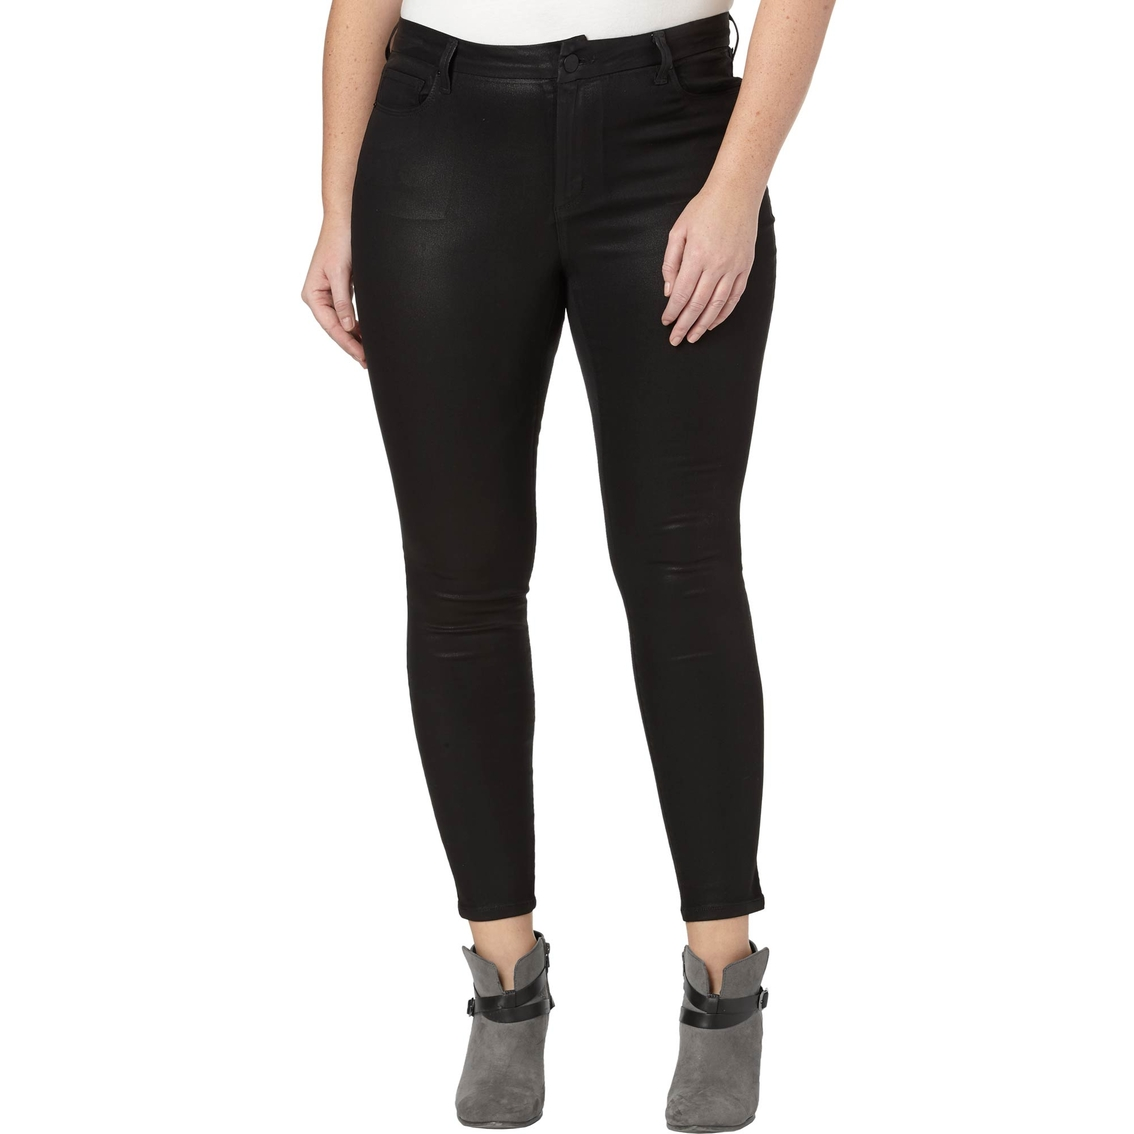 Jessica Simpson Plus Size High Rise Skinny Jeans Pants